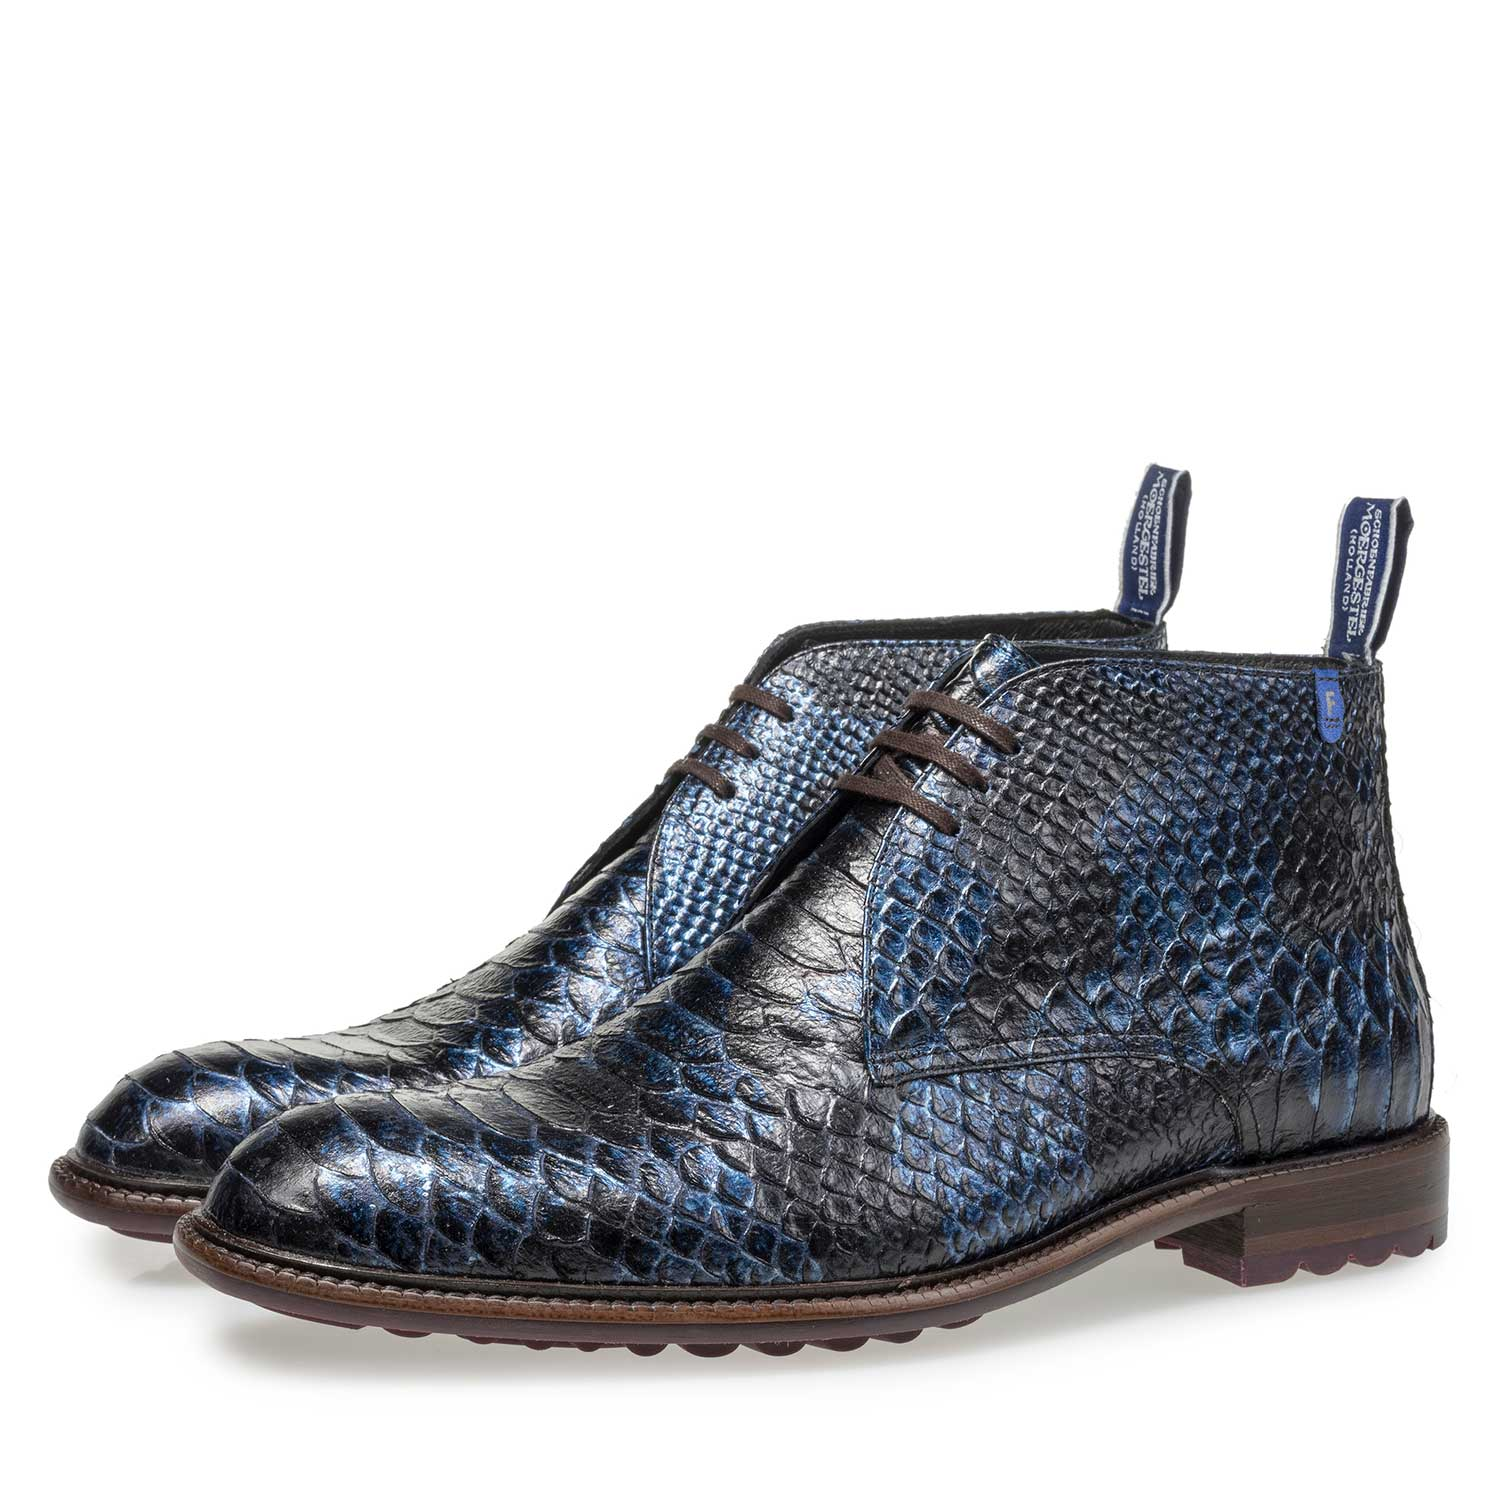 10203/11 - Blue lace boot with snake print